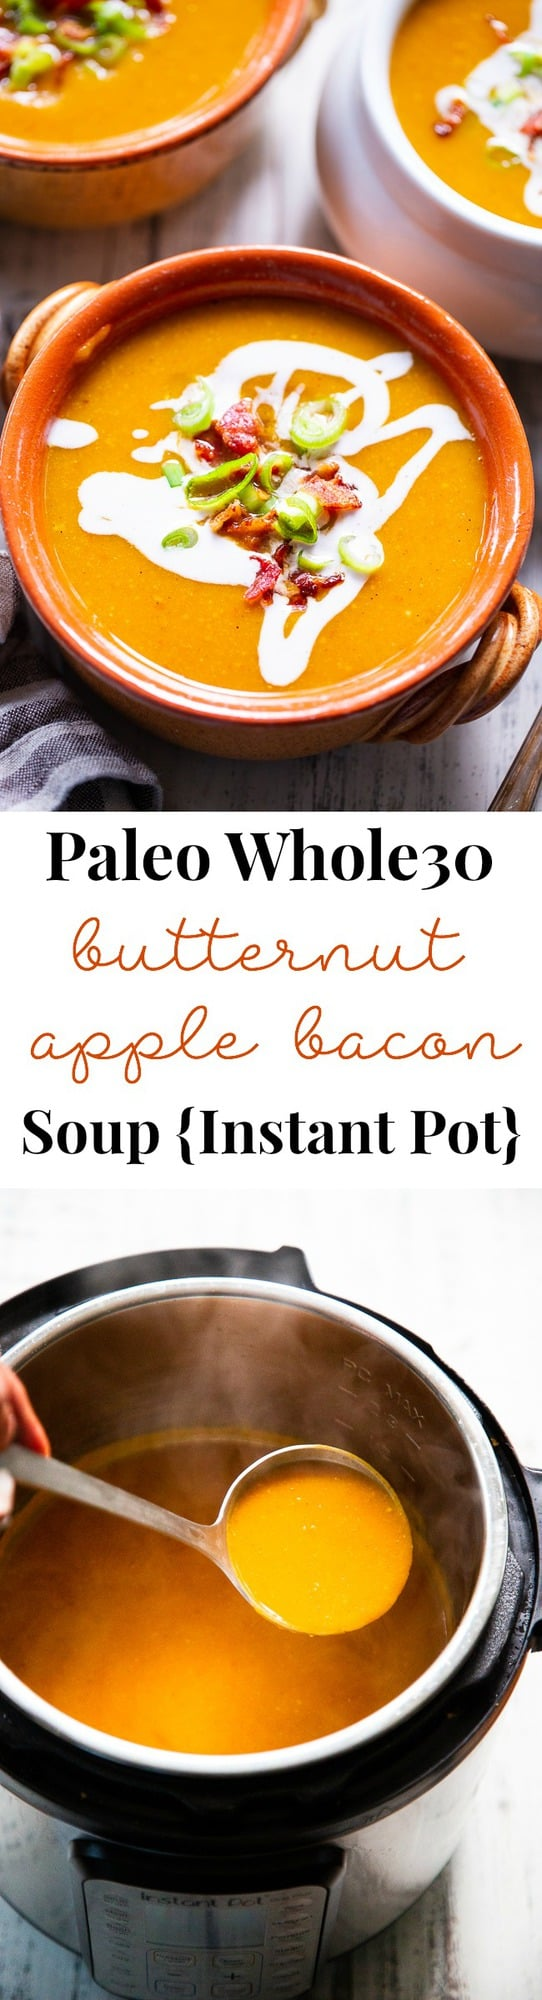 This Paleo and Whole30 butternut squash soup is creamy, sweet and savory!  It's made simple and fast in the Instant Pot for a quick healthy comforting meal. Bacon and apples lend sweet and smoky flavor to this fall and winter family favorite.  Paleo soup.  Paleo dinner.  Paleo instant pot.